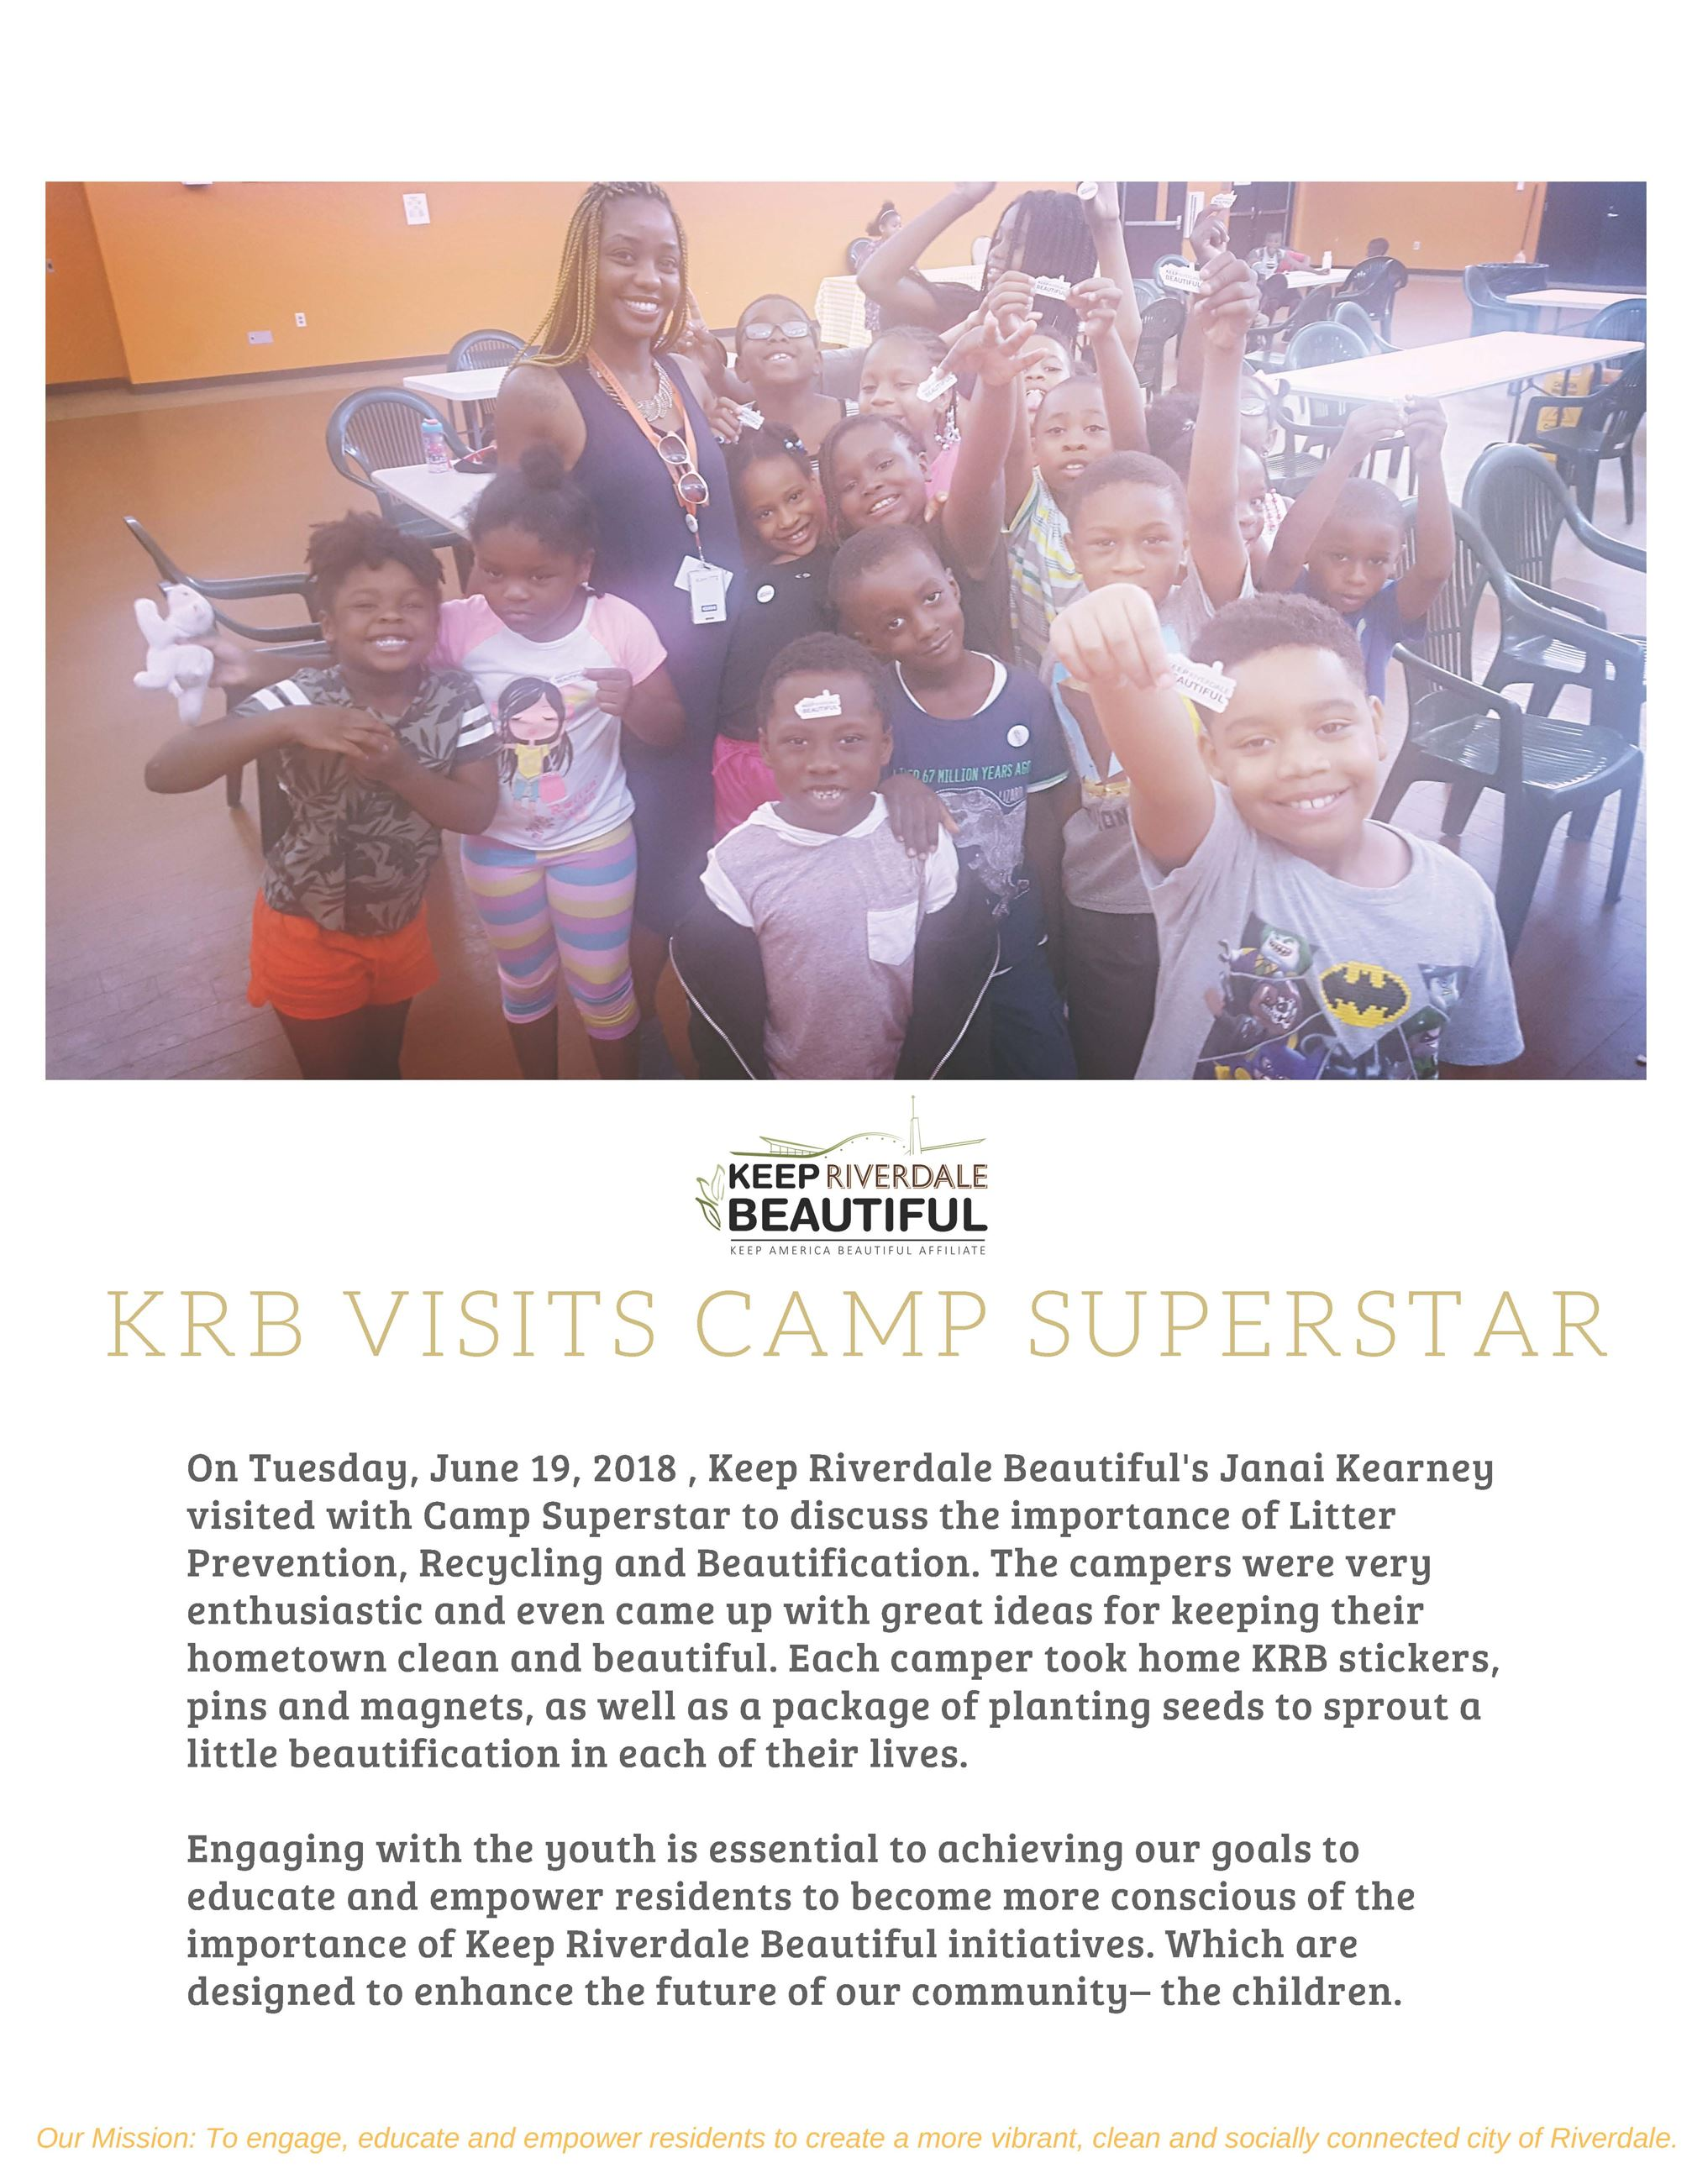 KRB Visits Camp Superstar 1